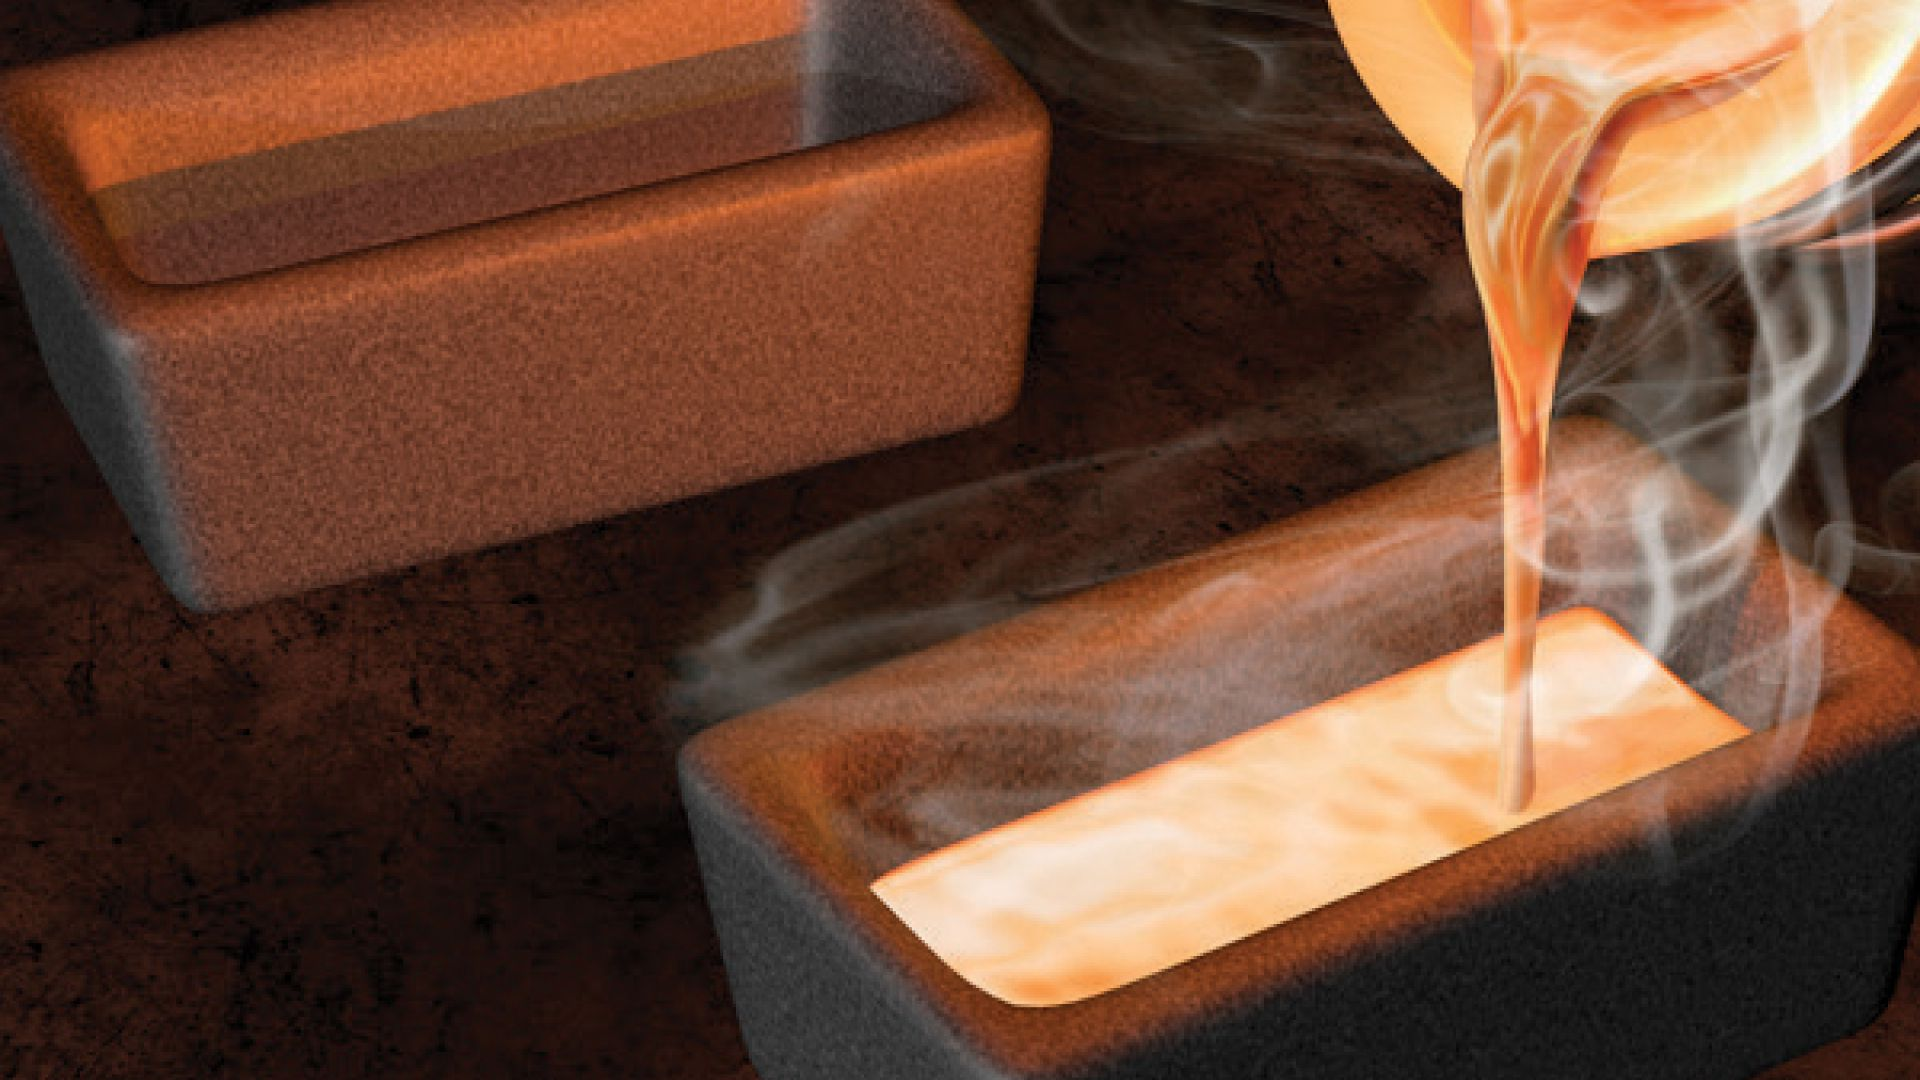 Casting And Shaping Precious Metals (Gold, Silver Etc.)